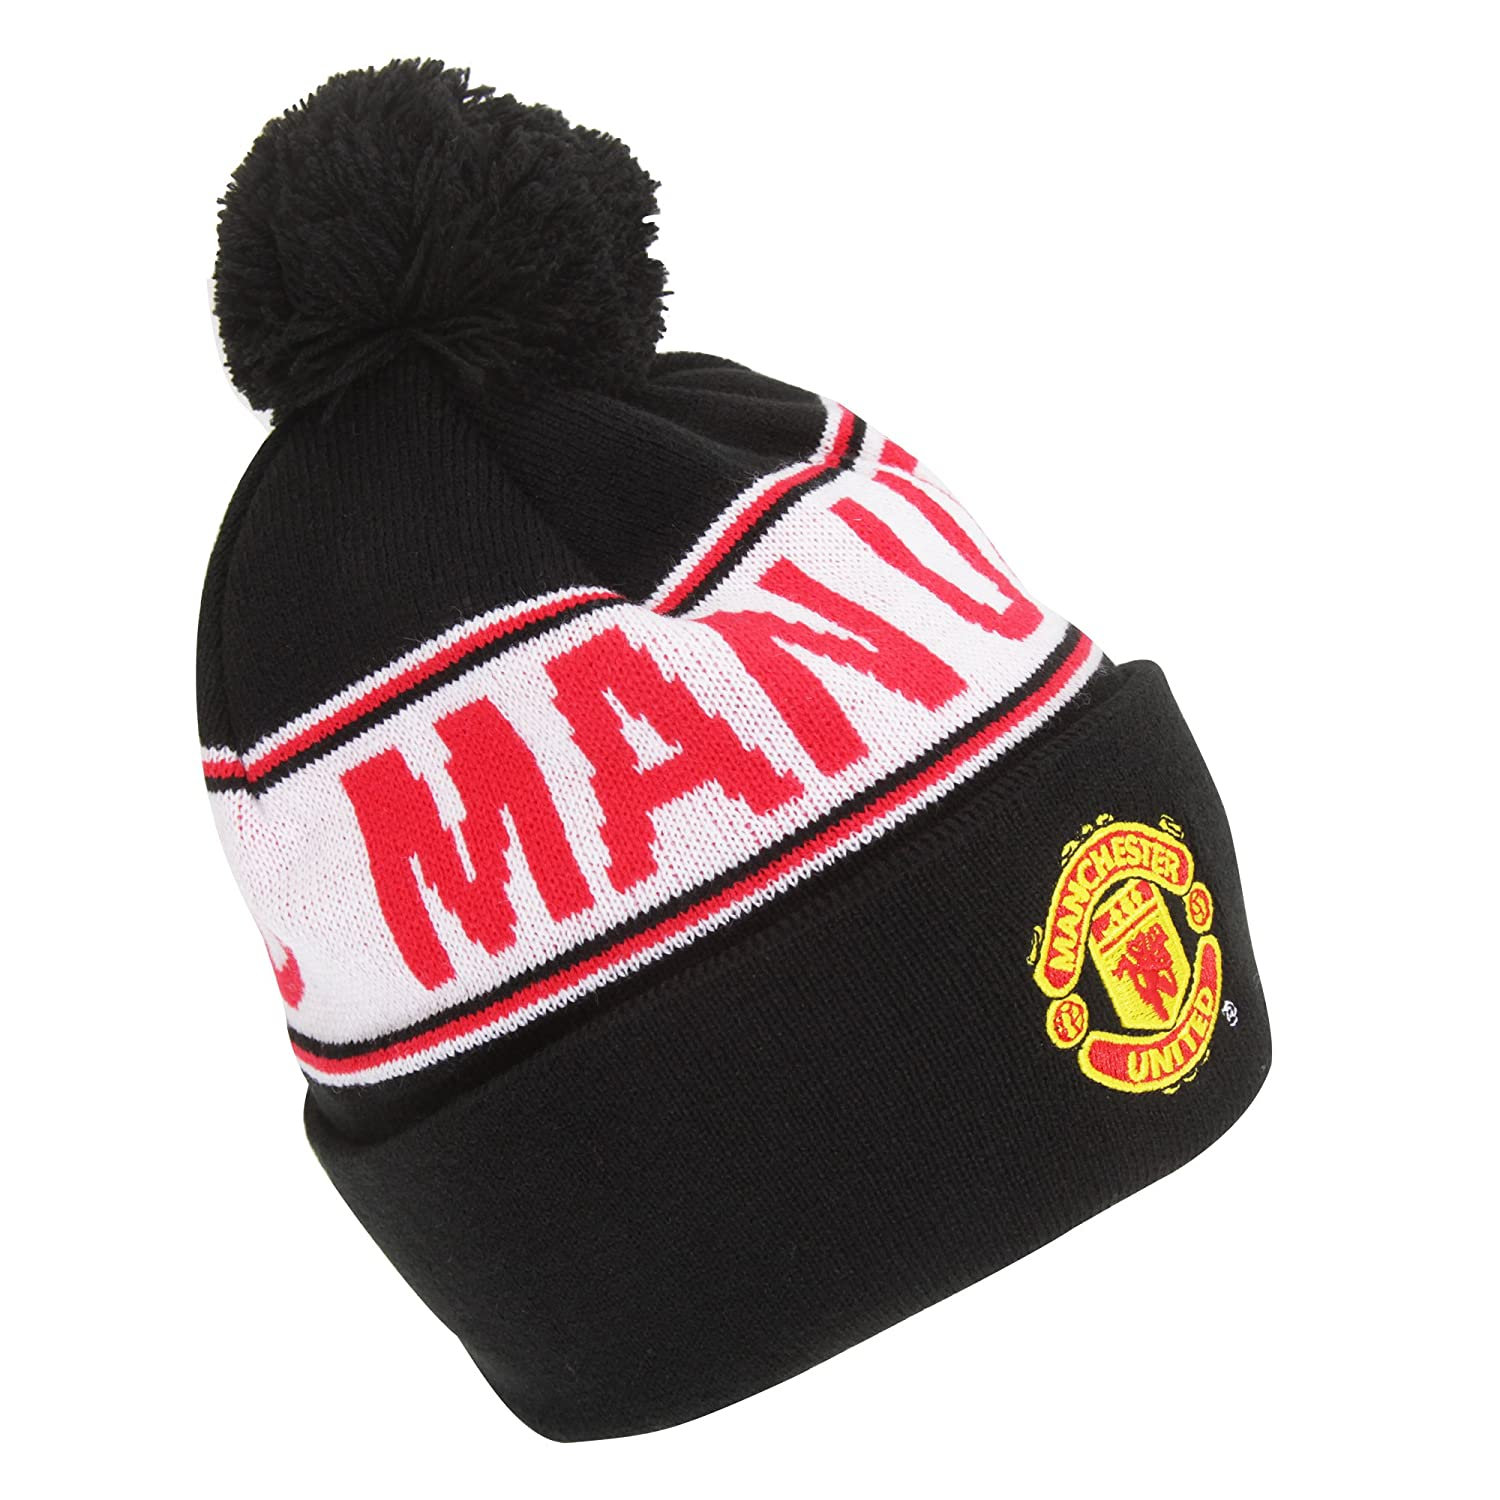 Manchester United Knitted Bronx Bobble Hat With Man Utd Design Black